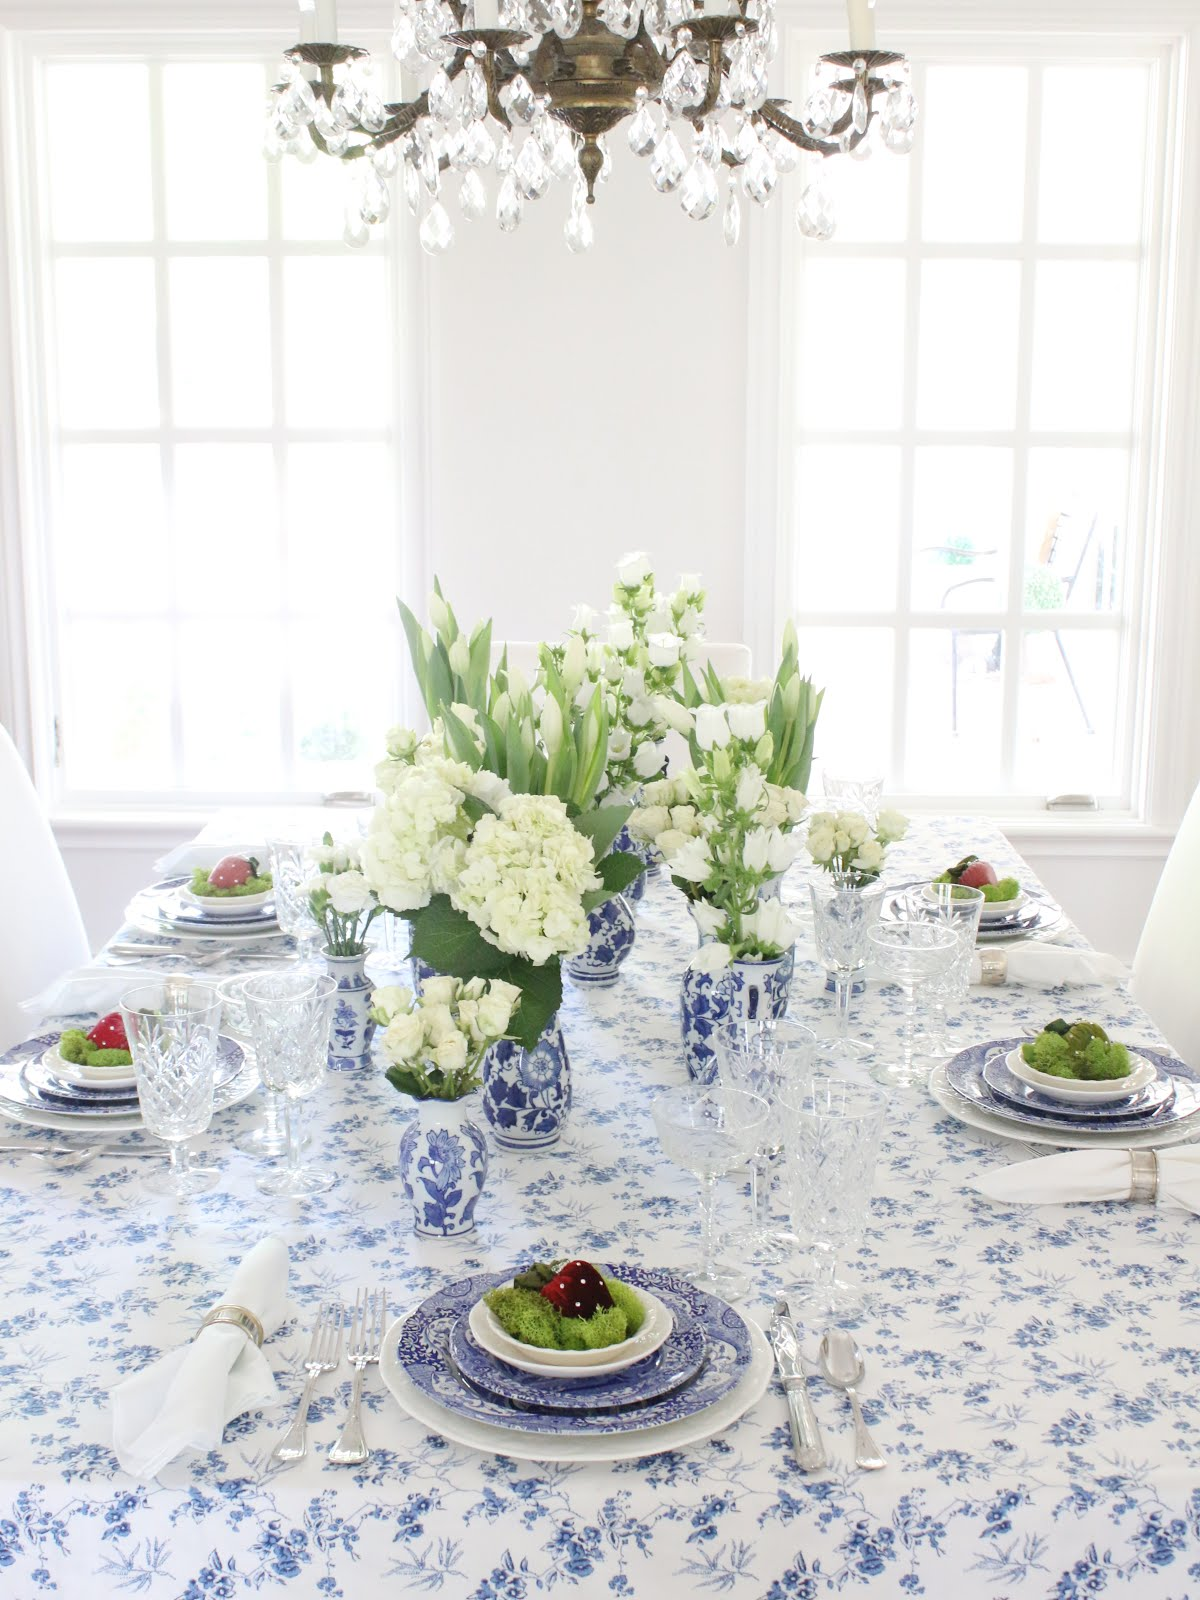 Similar Blue And White Tablecloth